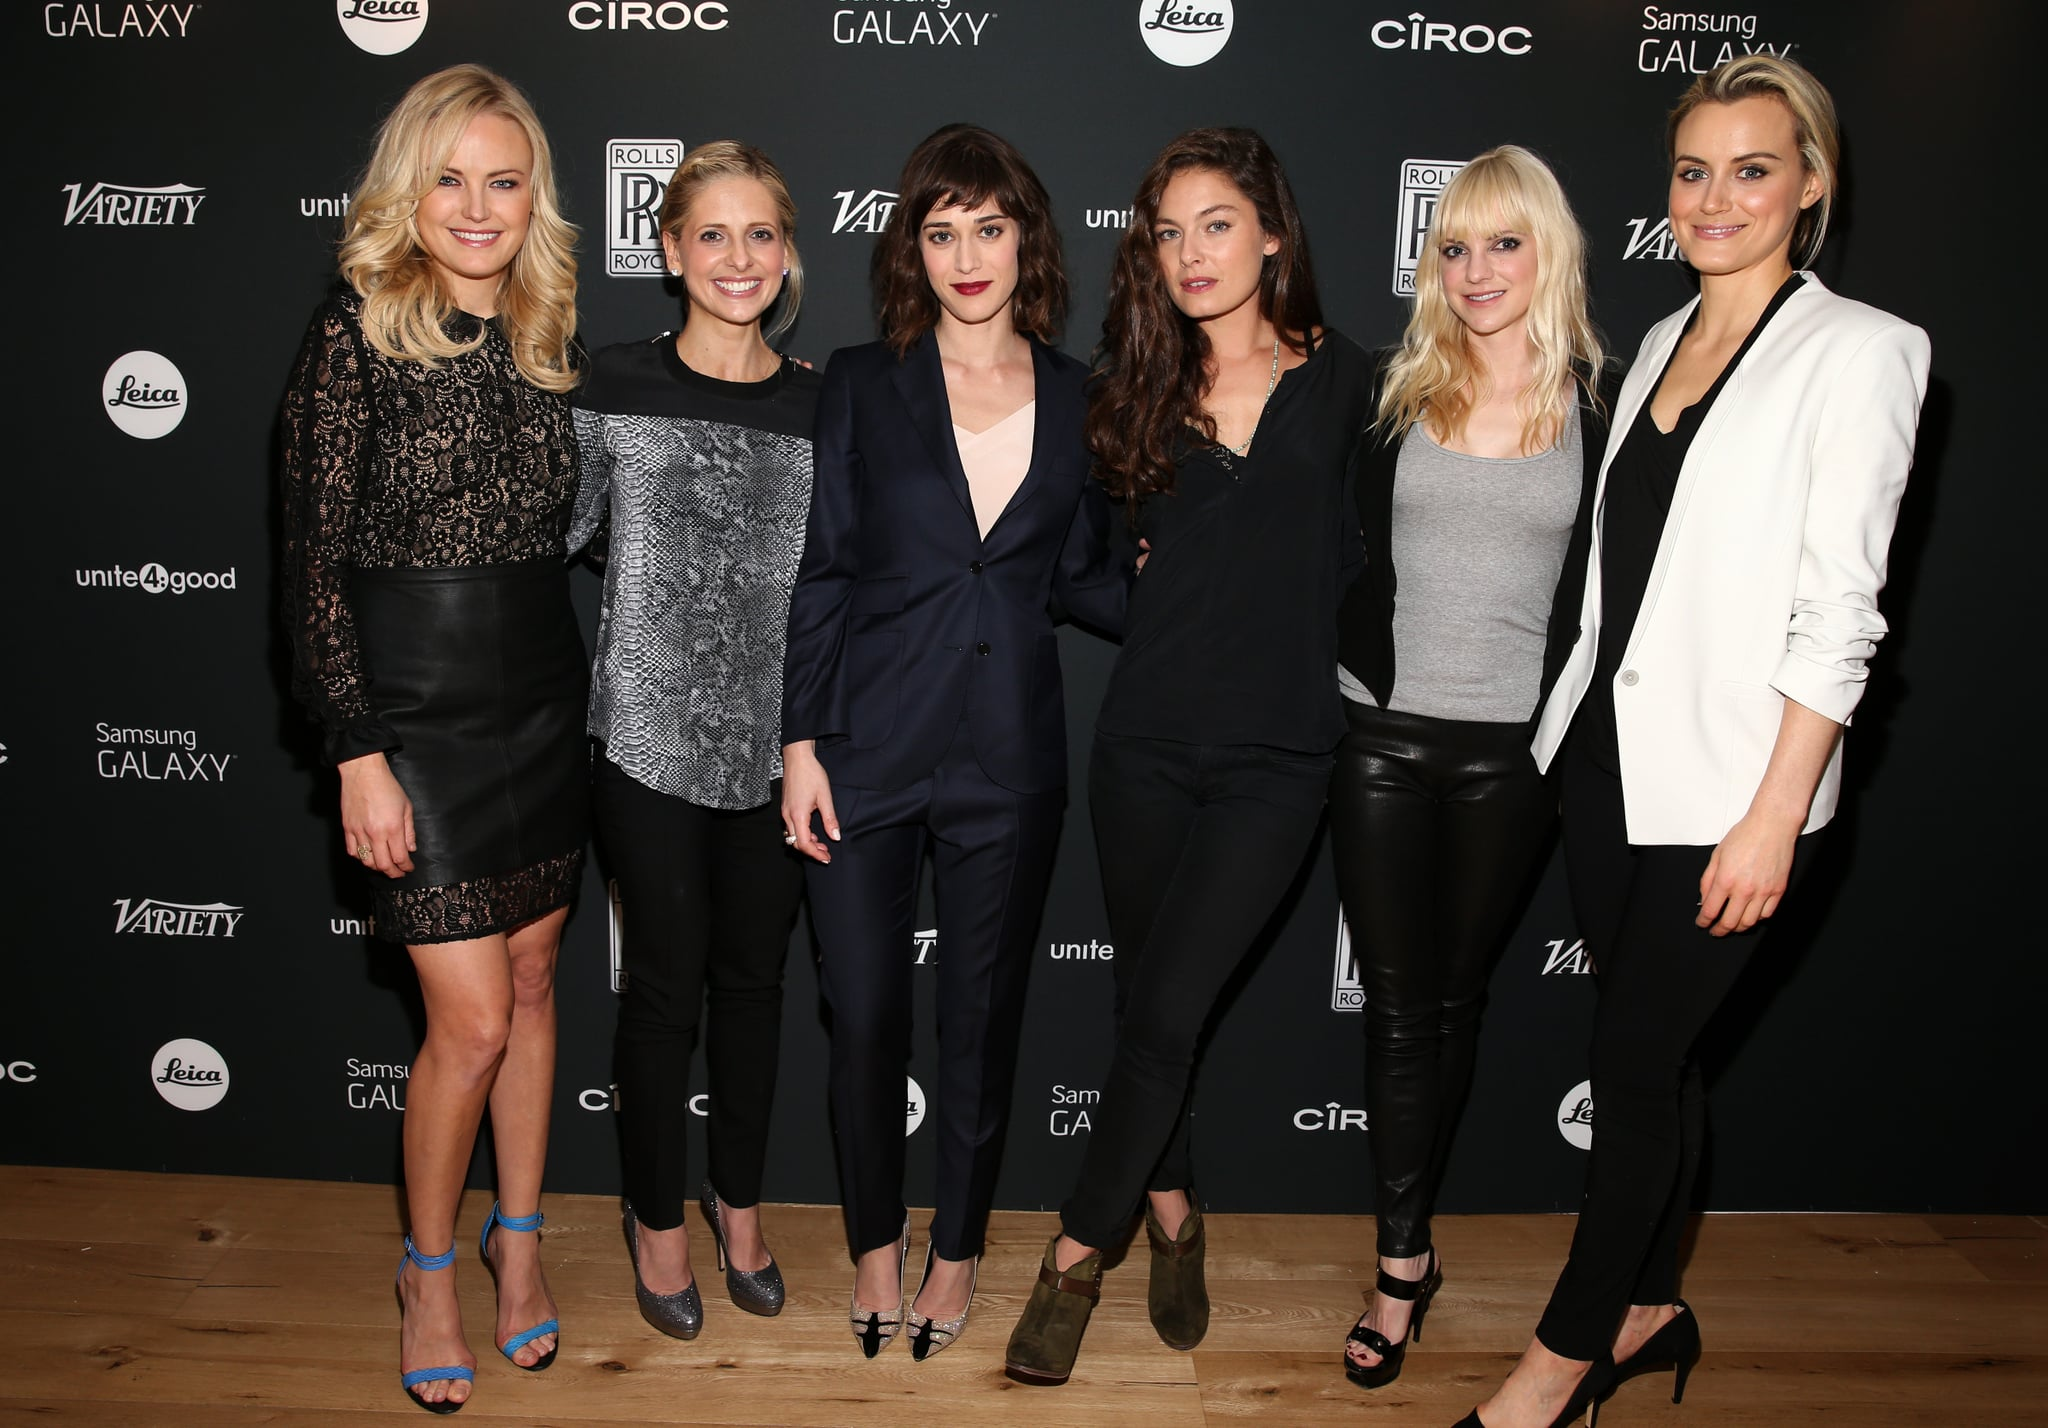 Malin Akerman, Sarah Michelle Gellar, Lizzy Caplan, Alexa Davalos, Anna Faris, and Taylor Schilling linked up for the Variety Awards Studio in LA on Wednesday.